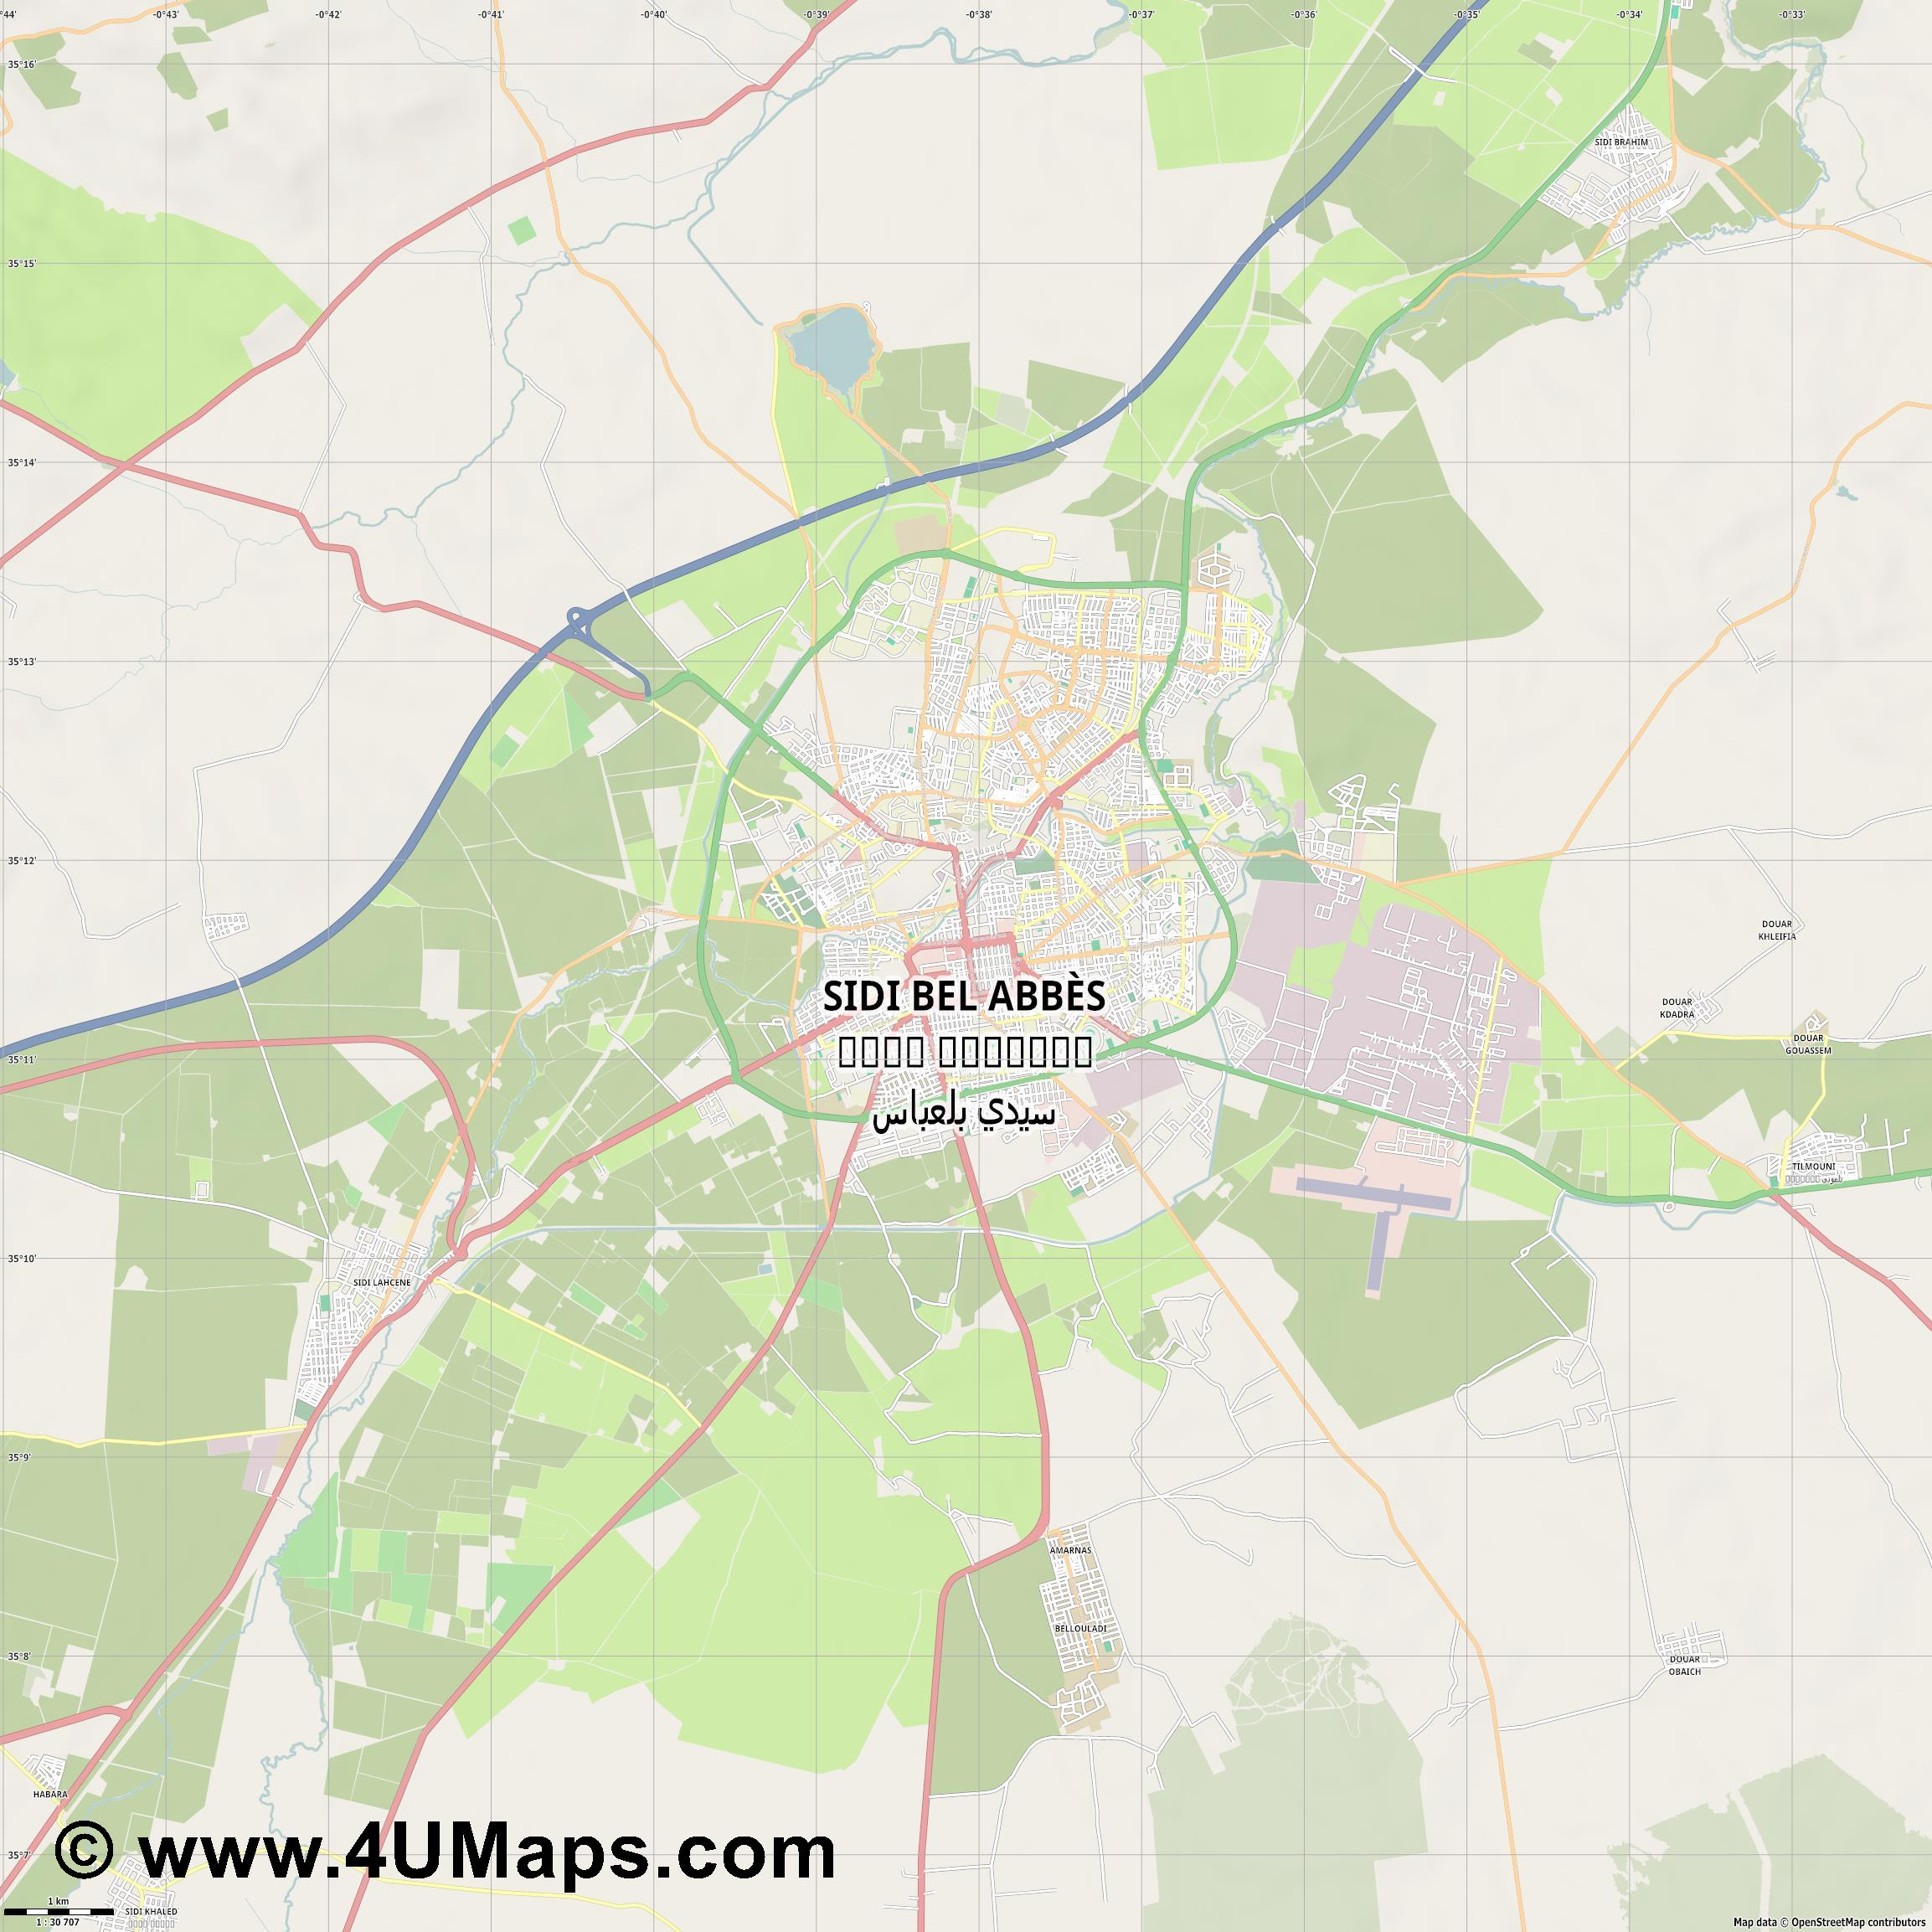 Sidi bel Abbès سيدي بلعباس Sidi Bel Abbès  jpg high detail, large area preview vector city map